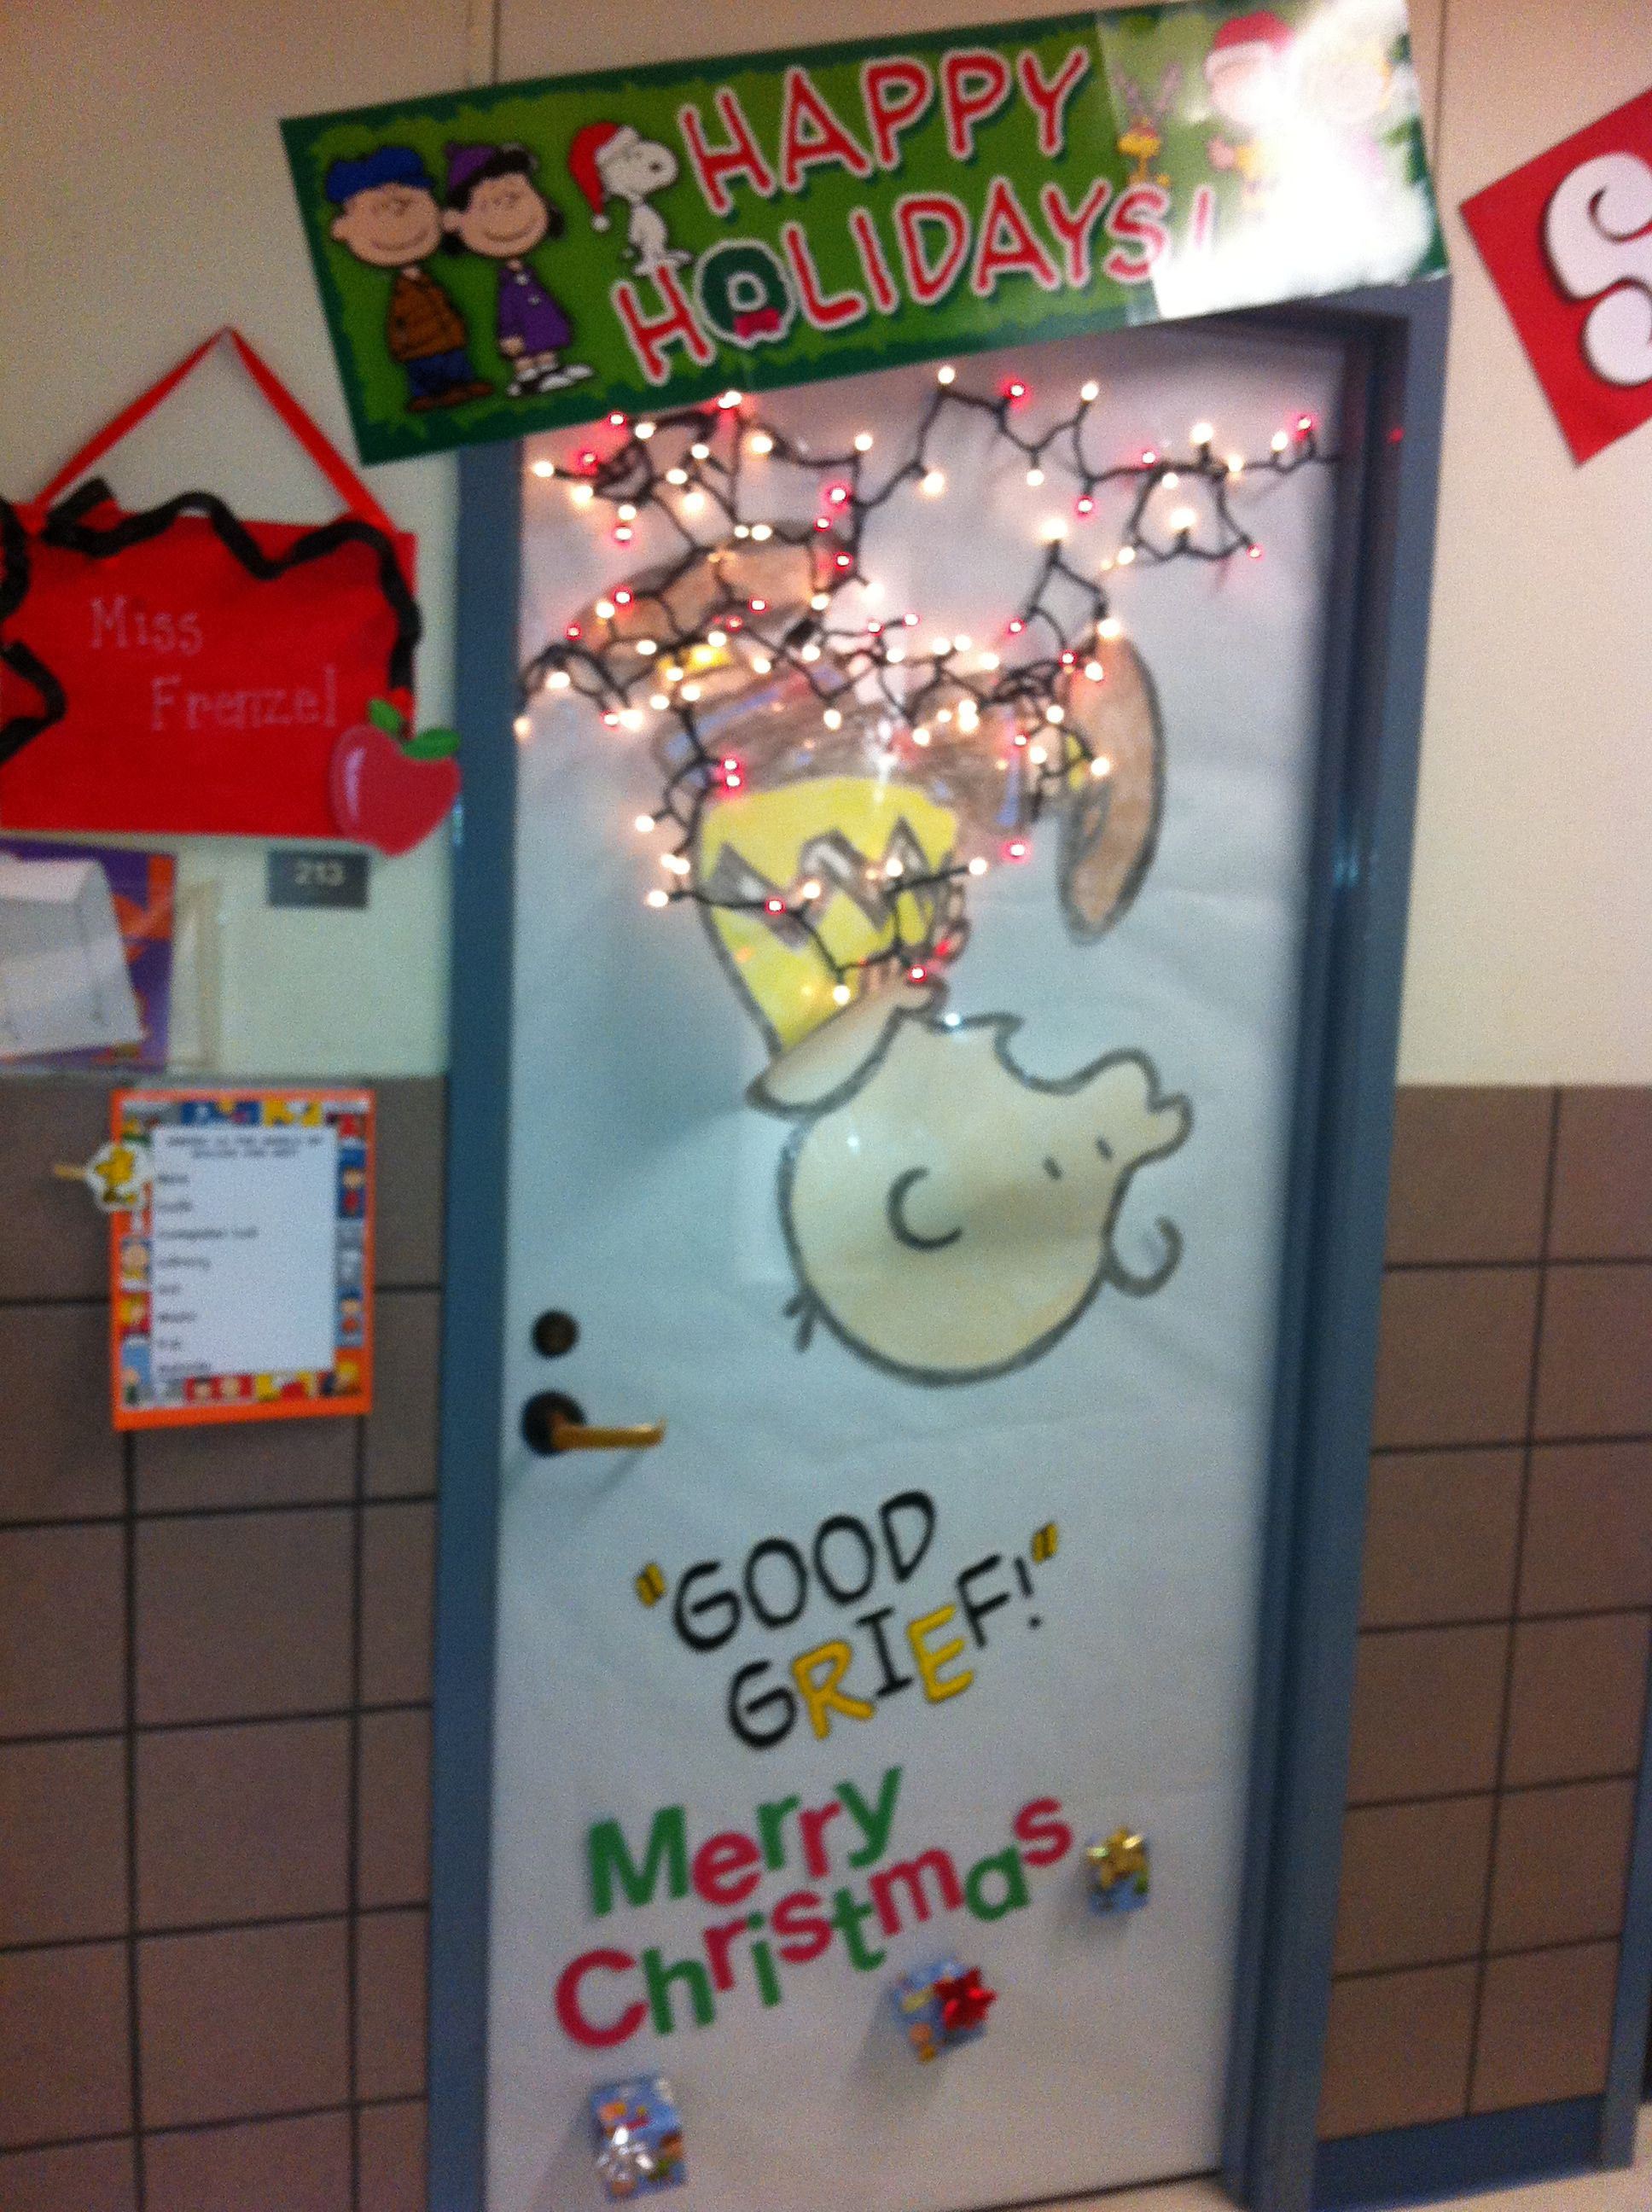 Christmas Classroom Door Poor Charlie Brown had some